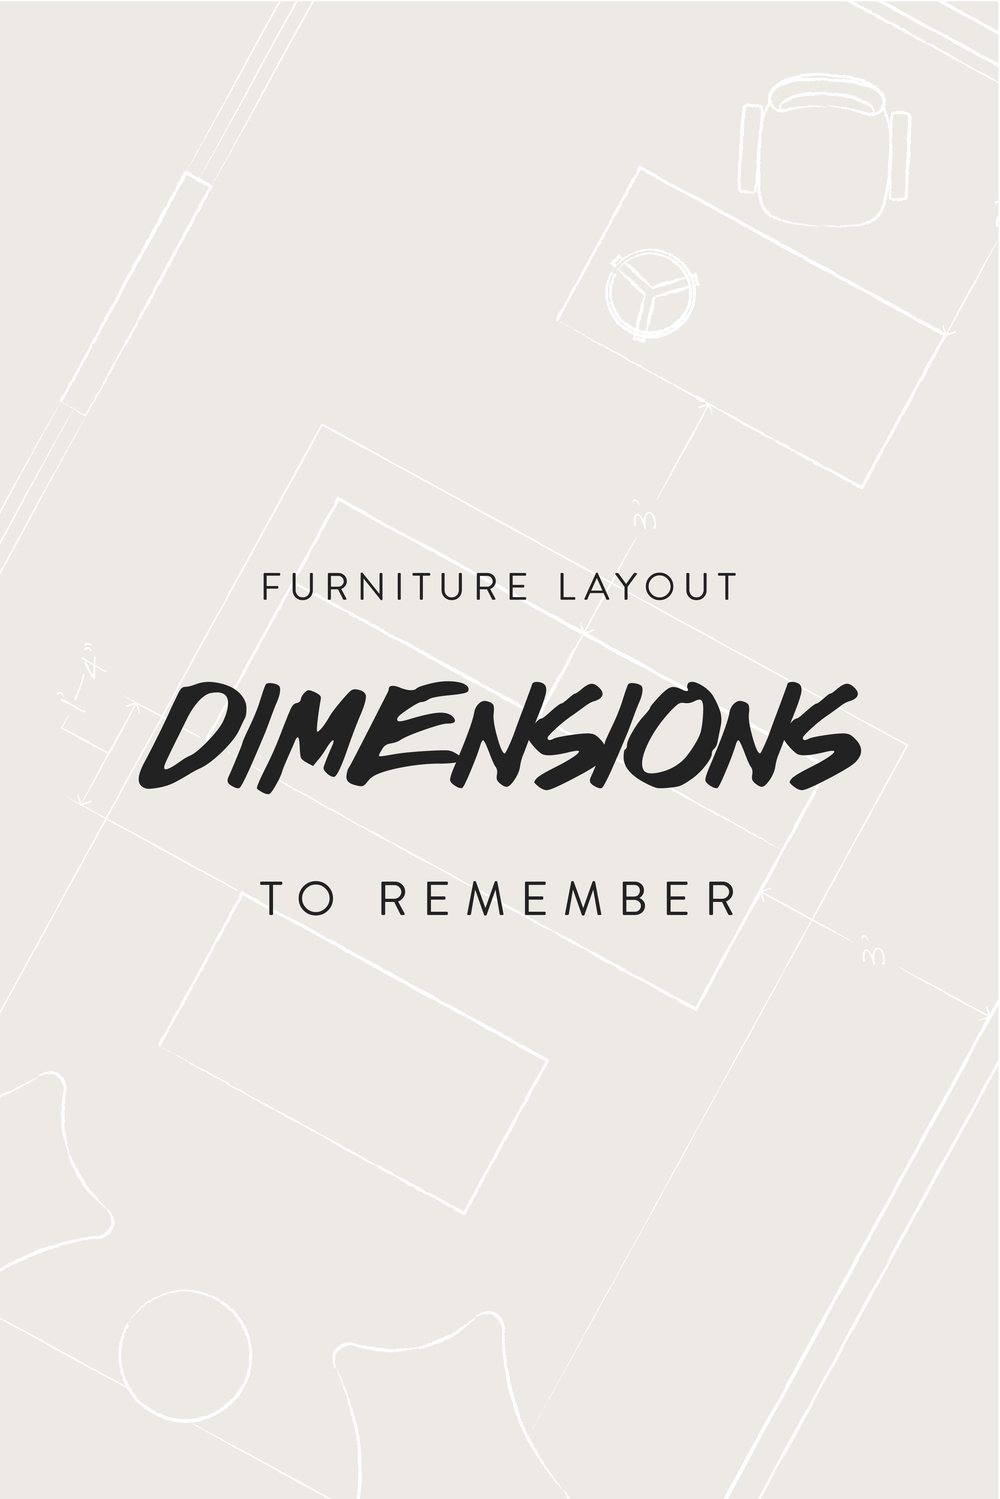 Important dimensions to remember when planning your furniture layout.  Click to learn more.